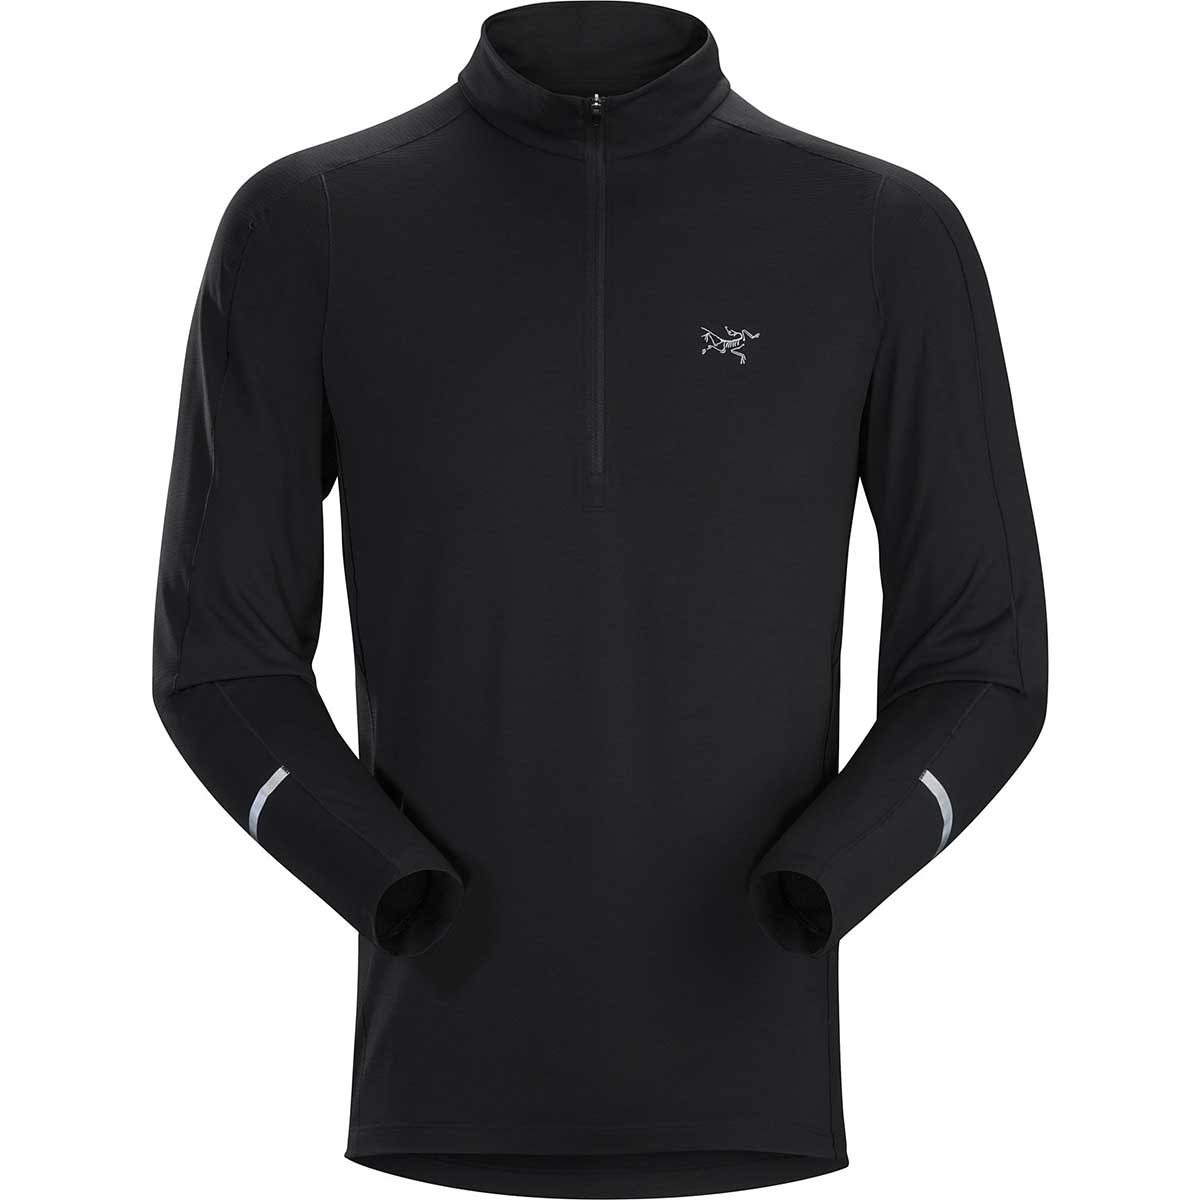 Arcteryx men's Cormac Zip Neck Top in Black front view